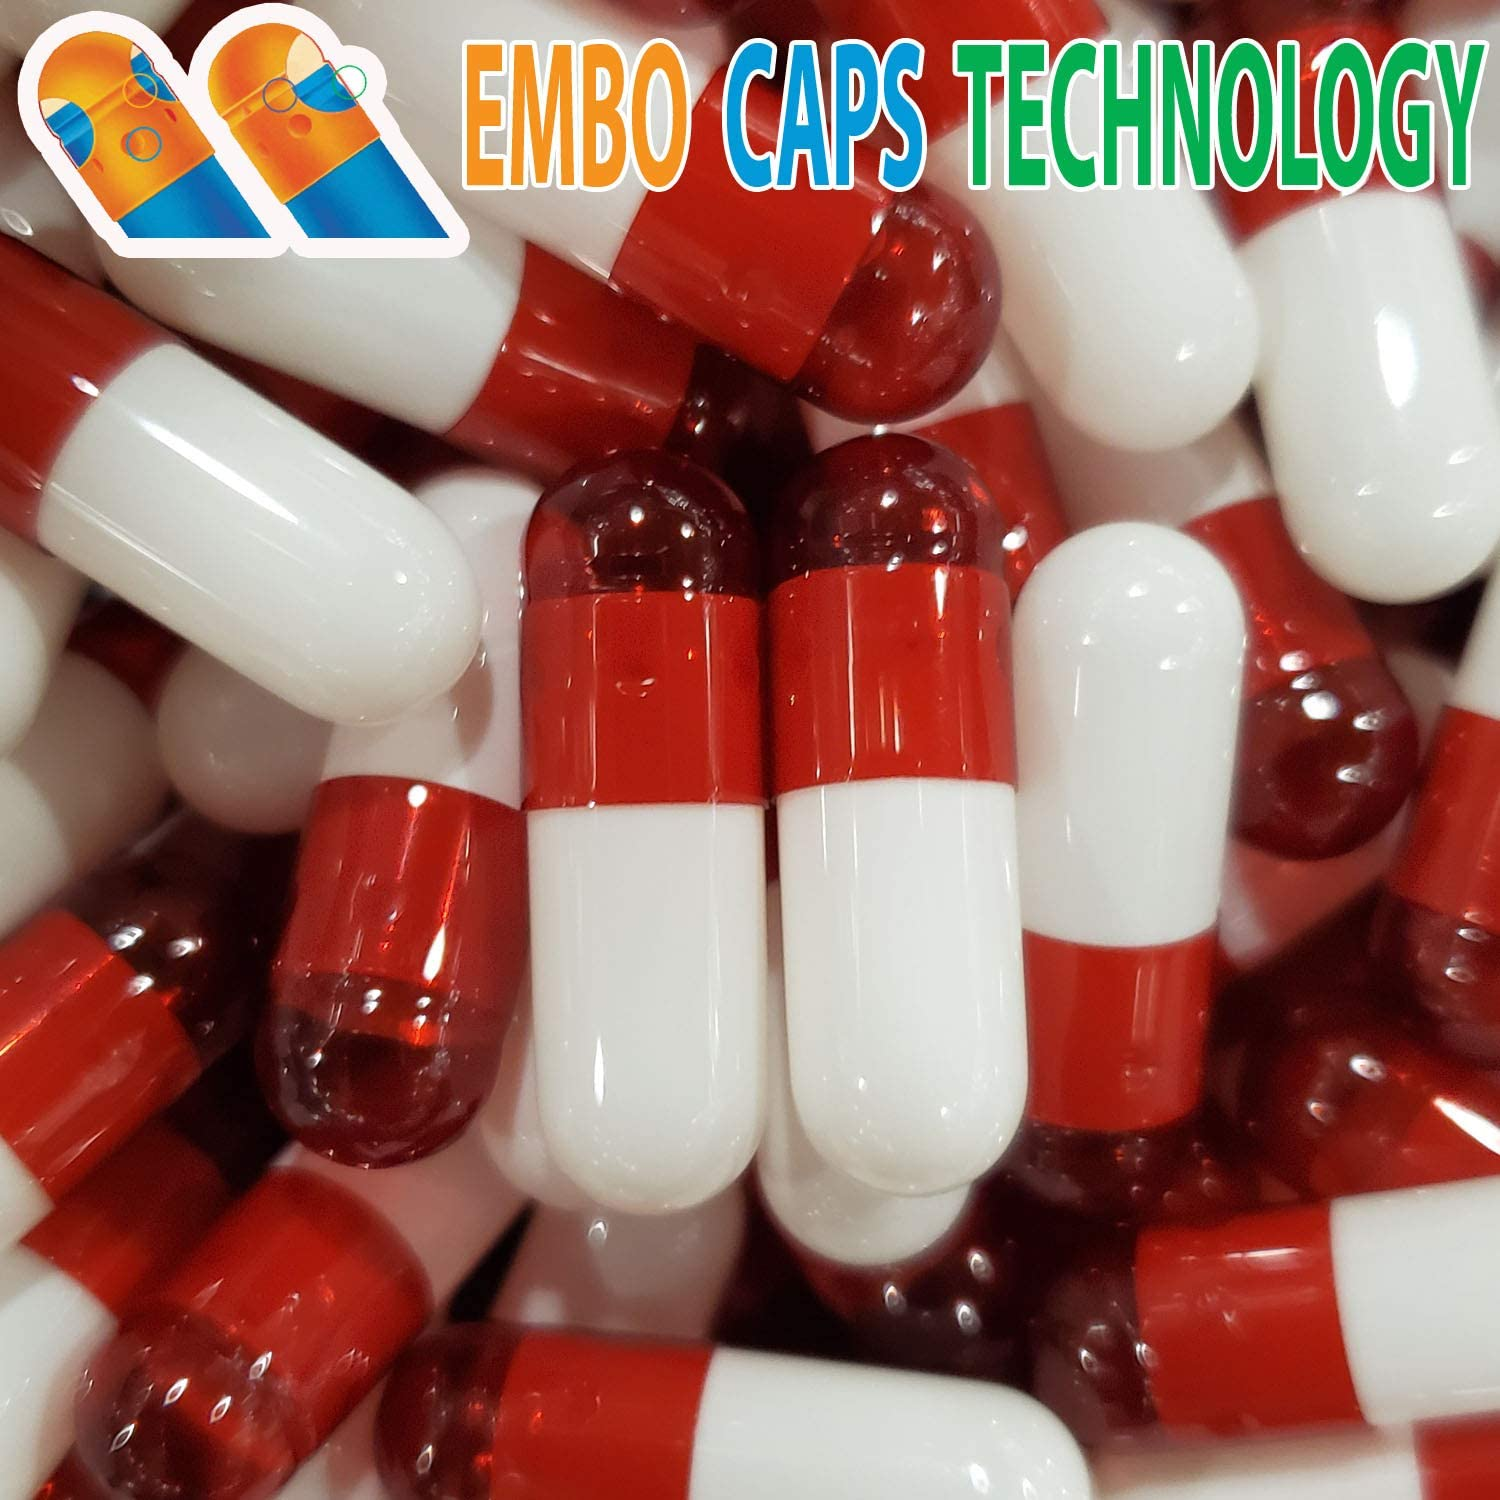 Empty Gelatin Capsules 0 Size - 1000 Count, Red White Color, Premium EMBO Caps Technology, Compatible with Capsule Filling Machine & Capsule Pill Gel Filler by Capsules World